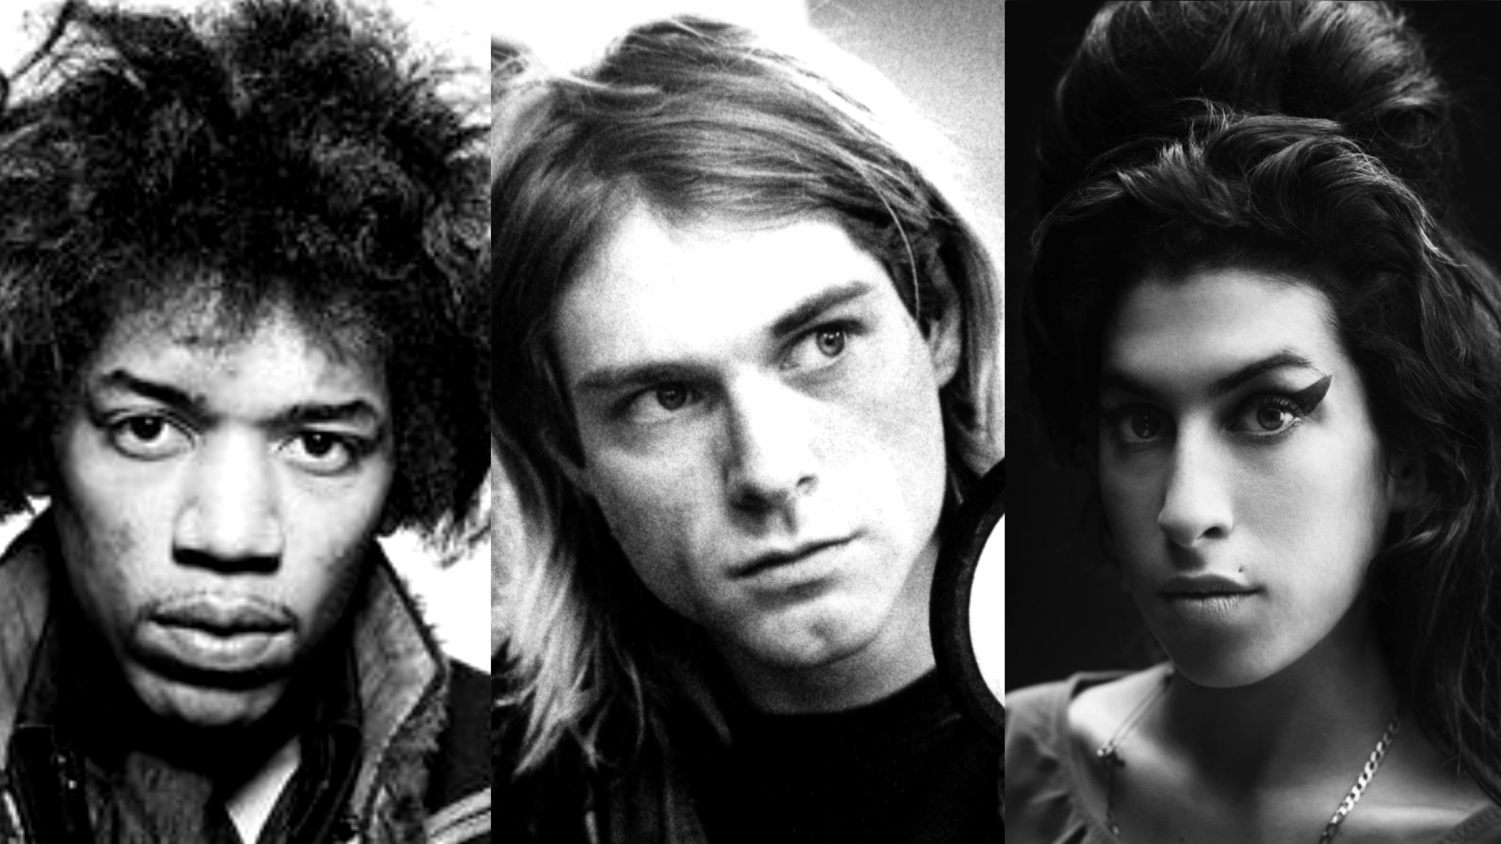 The 27 Club and the Romanticization of Mental Illness in the Entertainment Industry